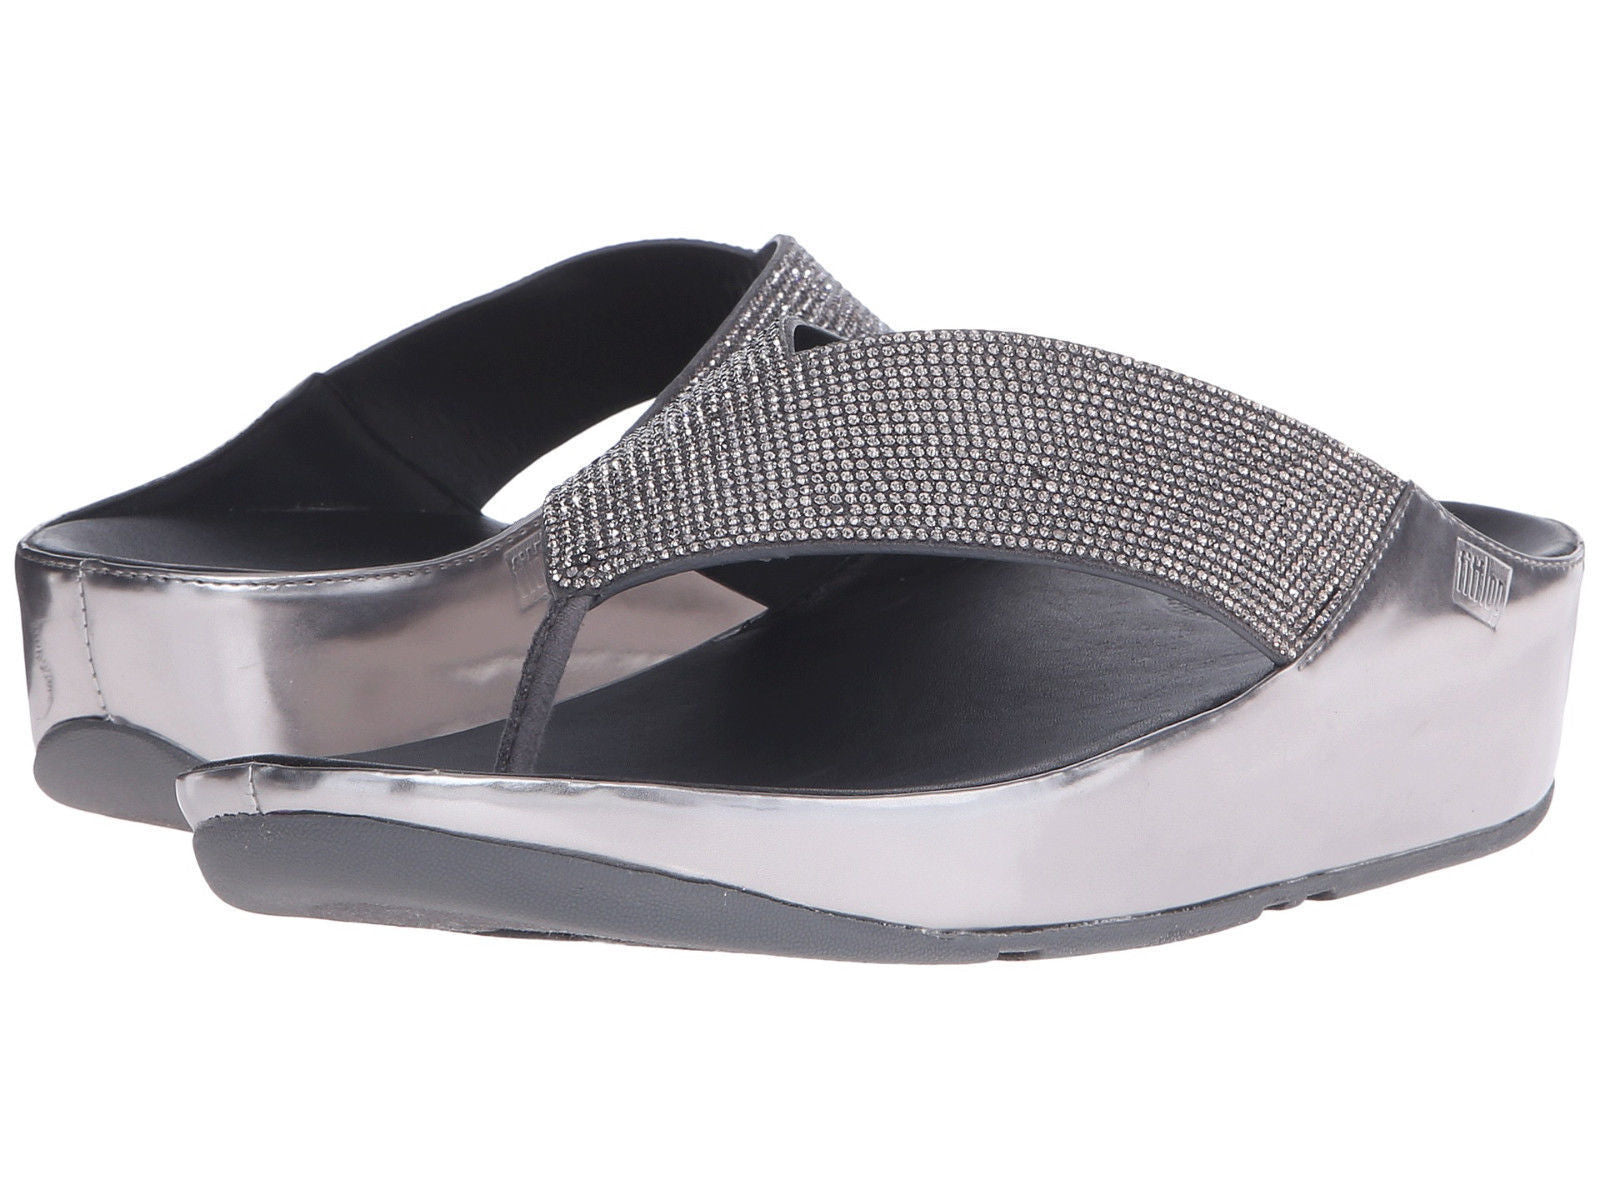 Fitflop Crystall Toe Post - Pewter